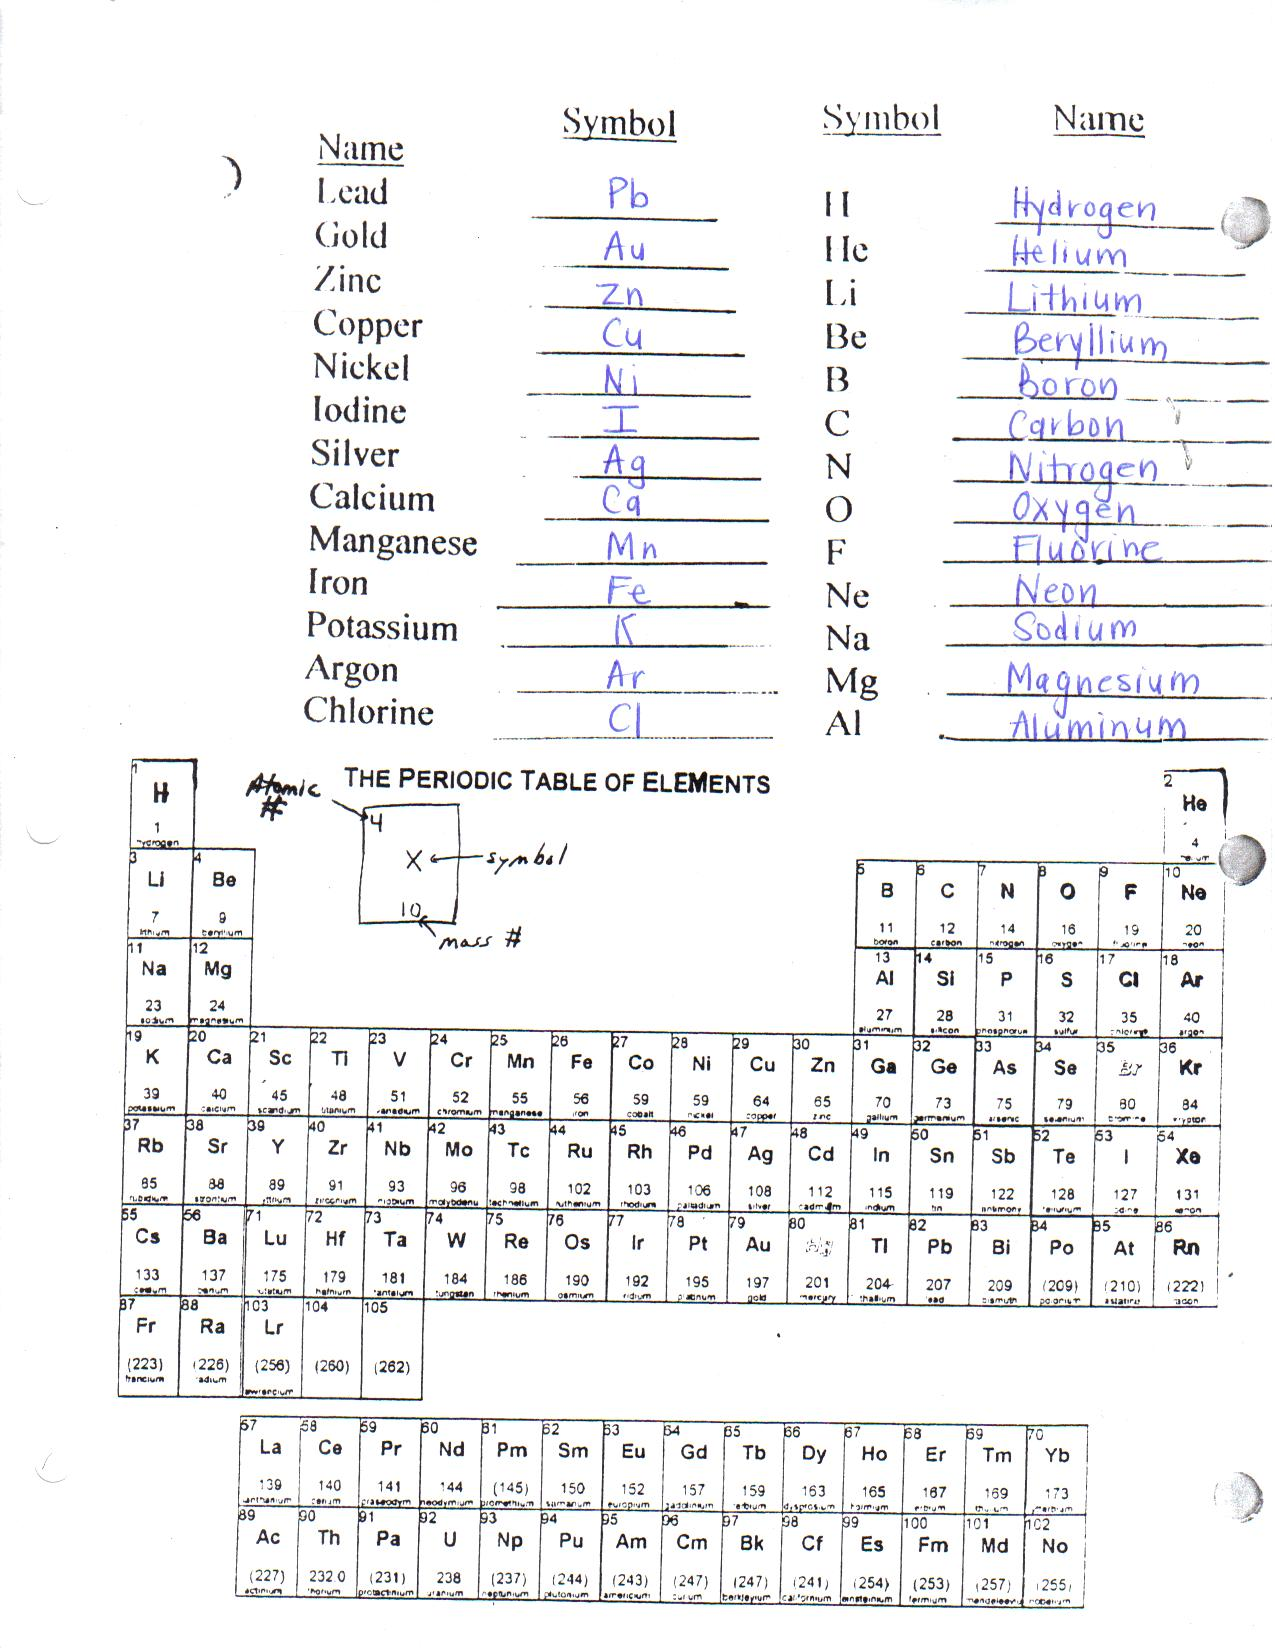 Toxic Science also Counting Atoms Worksheet for 10th   12th Grade   Lesson Pla together with Quiz   Worksheet   Atoms and Molecules   Study likewise Counting Atoms likewise Counting Atoms Worksheet Middle Answer Key Worksheets Answers additionally Chemical s and  pound Drawings  Counting Atoms an furthermore Review grade 9 chemistry besides Counting Atoms further 47 Chemistry Counting Atoms In  pounds Workshet 7 0 1  Chemistry further Atoms And Elements Worksheet Google Search Projects To Try Periodic furthermore  furthermore  besides Kids Counting Atoms Worksheet Practice Grade 9 On The Inside Green likewise  moreover Counting Atoms practice by Laura Fischer Leskowits   TpT besides Counting Atoms Worksheet Answers   Sanfranciscolife. on counting atoms worksheet grade 9